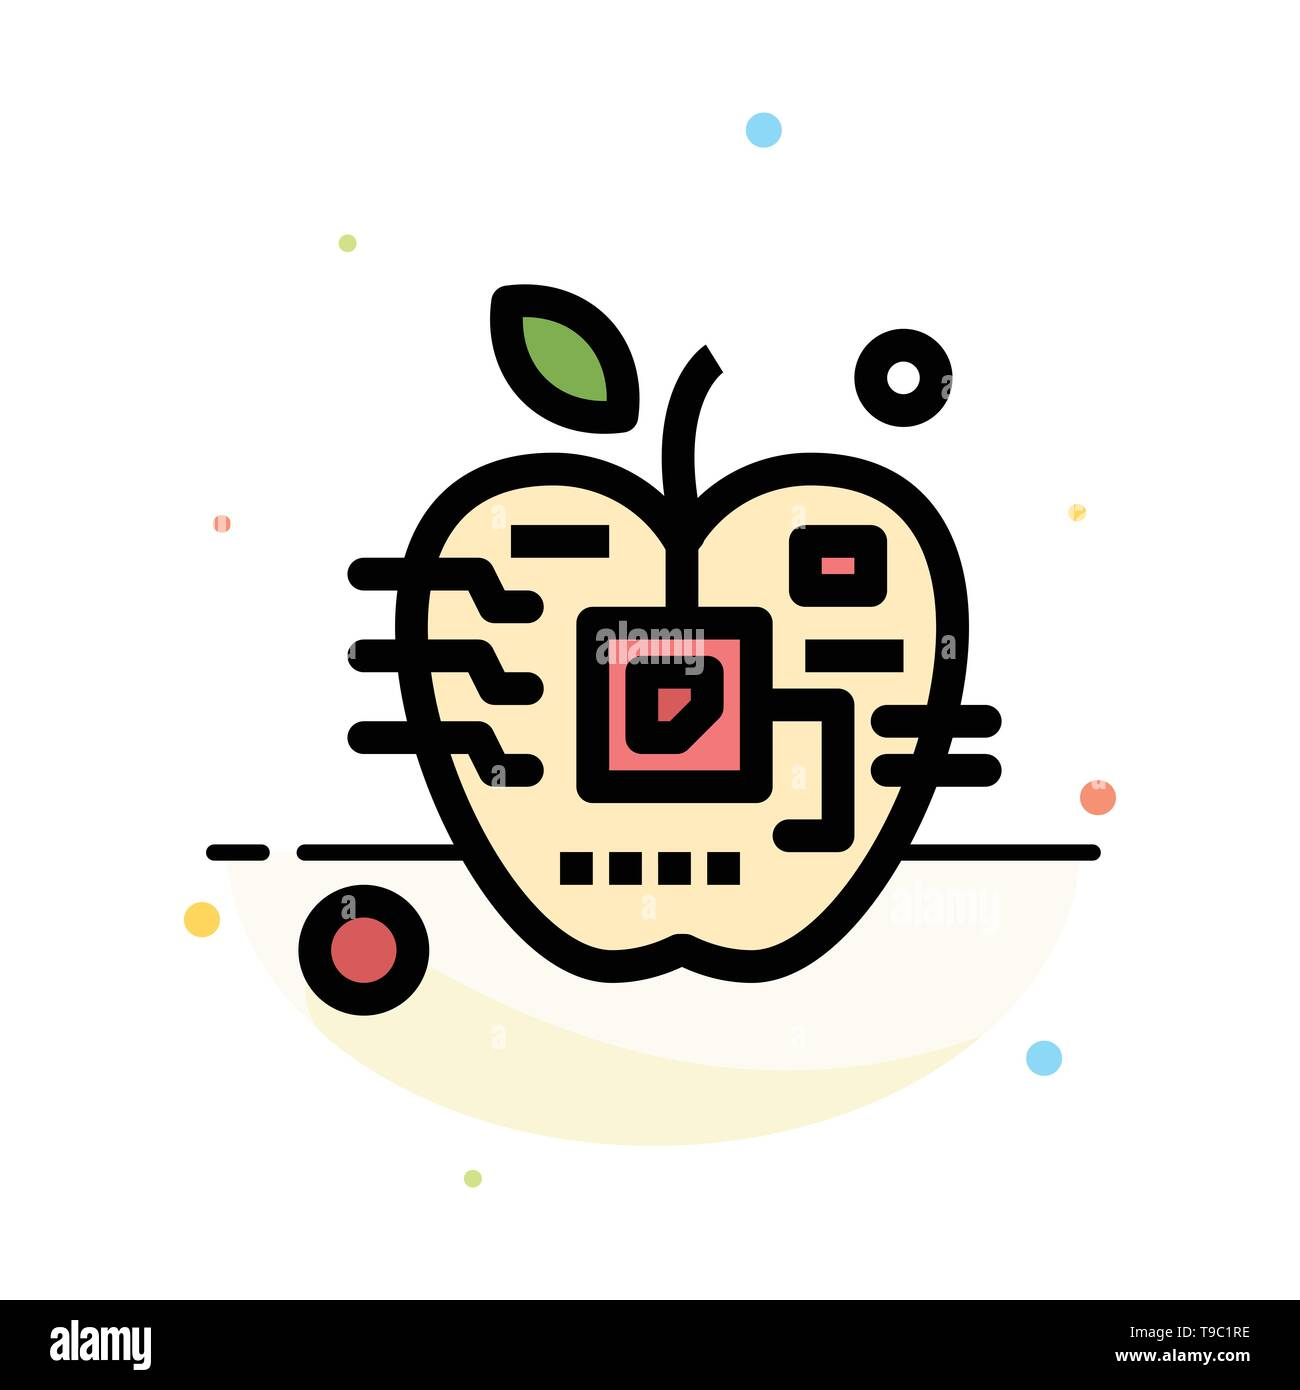 Apple, Artificial, Biology, Digital, Electronic Abstract Flat Color Icon Template - Stock Image